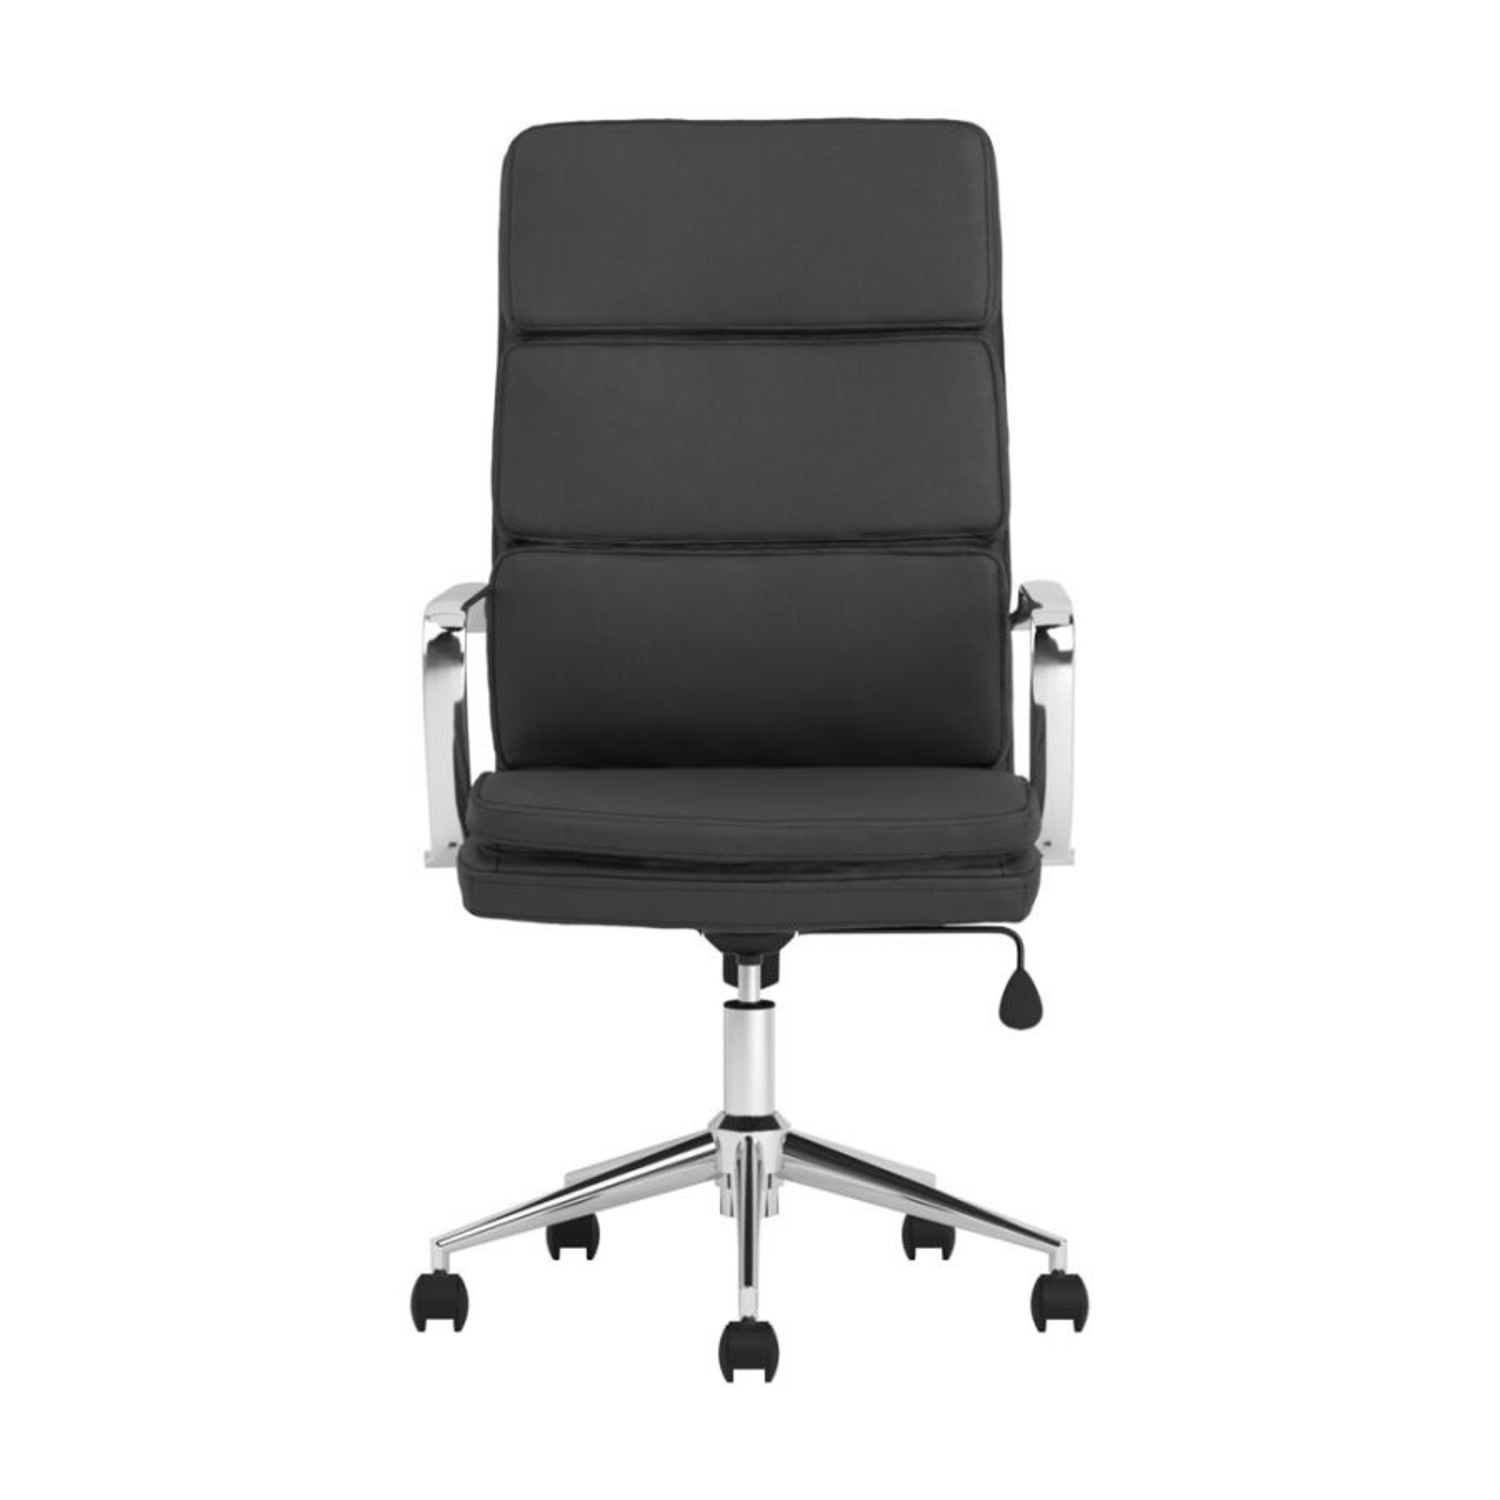 Office Chair In Black Cushion Leatherette Finish - image-1